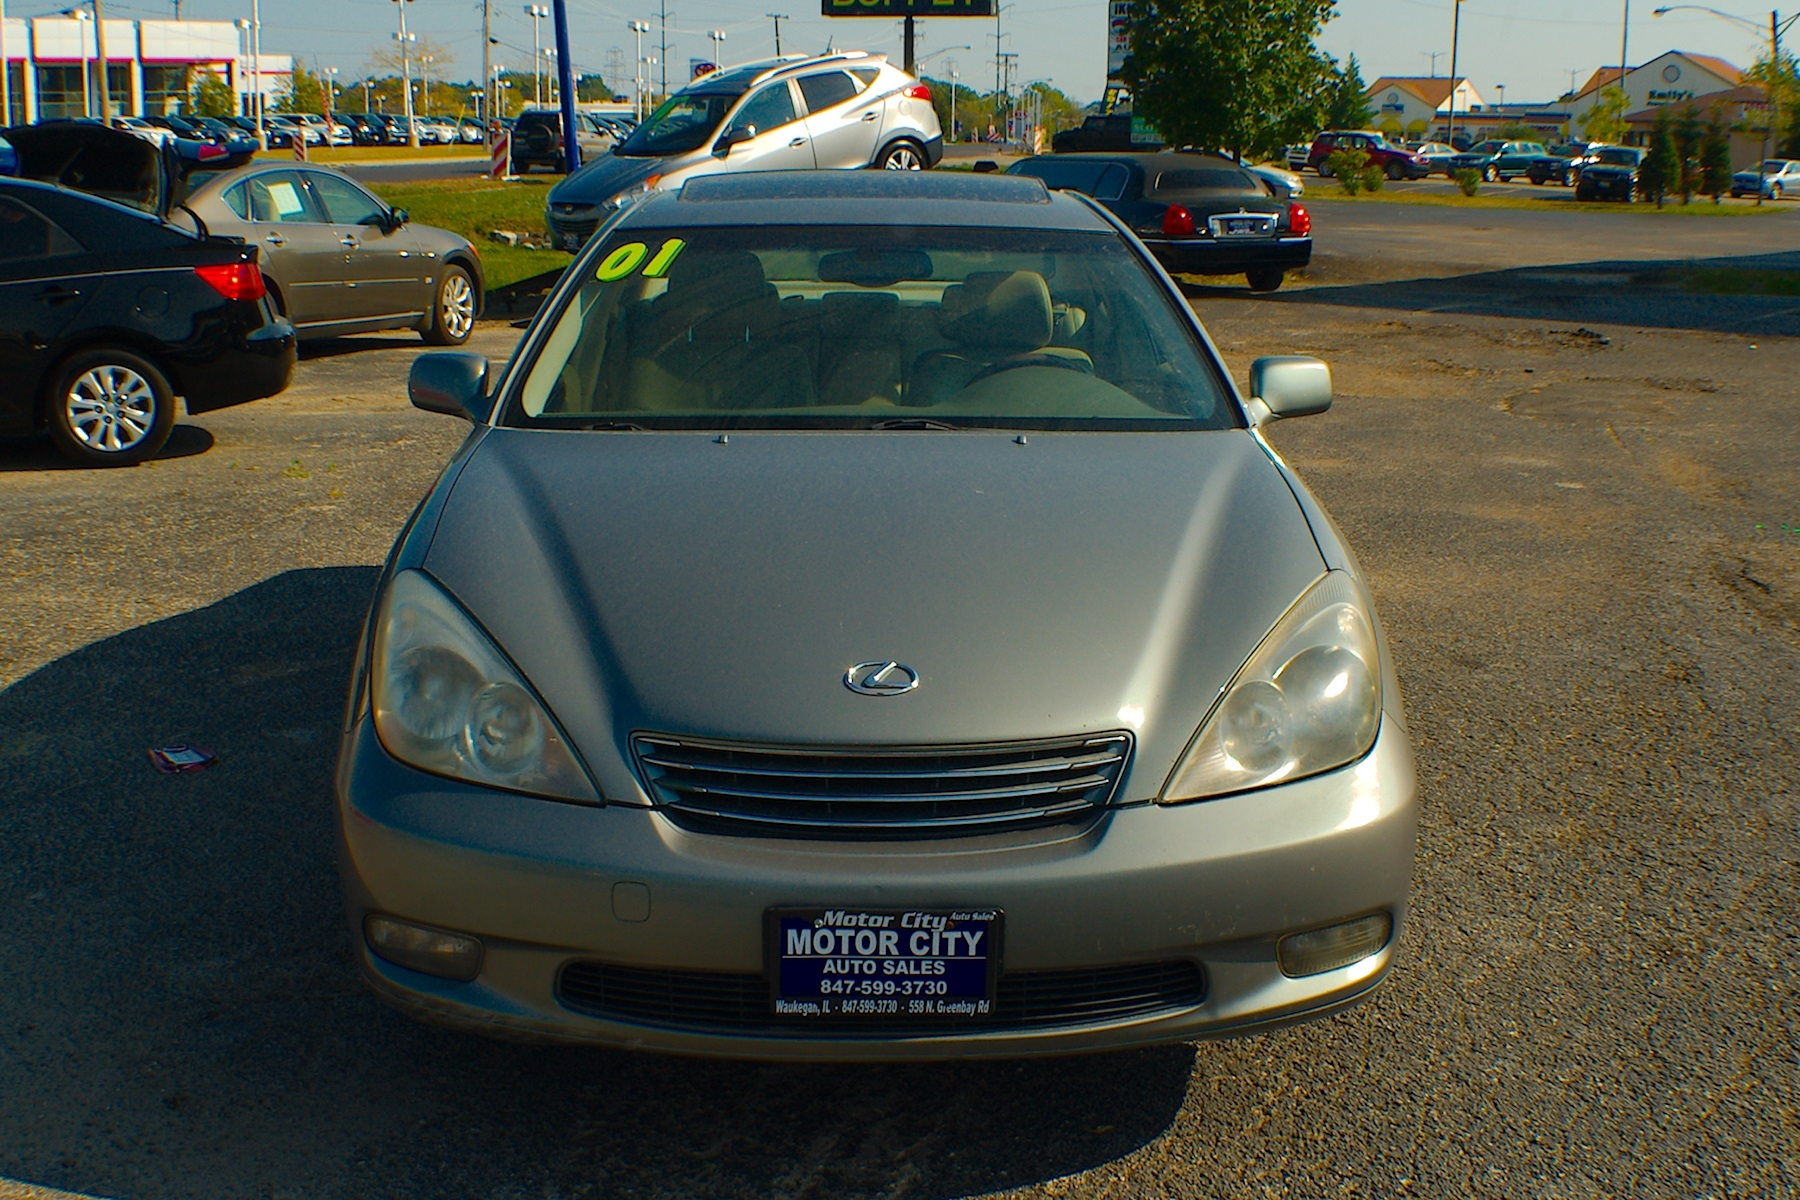 2002 lexus es300 green sedan used car sale web page advertiser